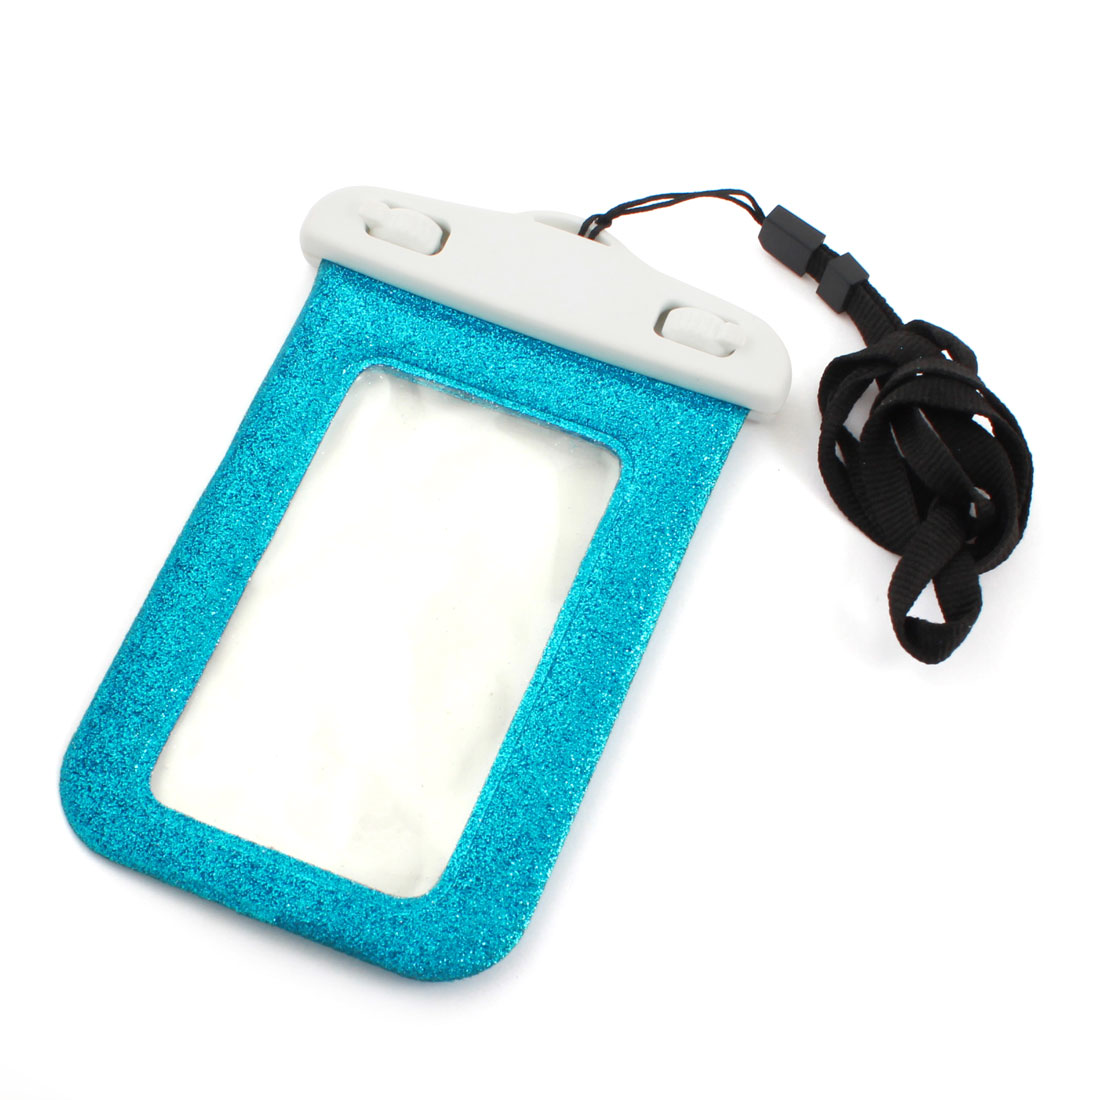 Teal Glitter Power Waterproof Cellphone Pouch Dry Bag Case w Neck Strap Armband